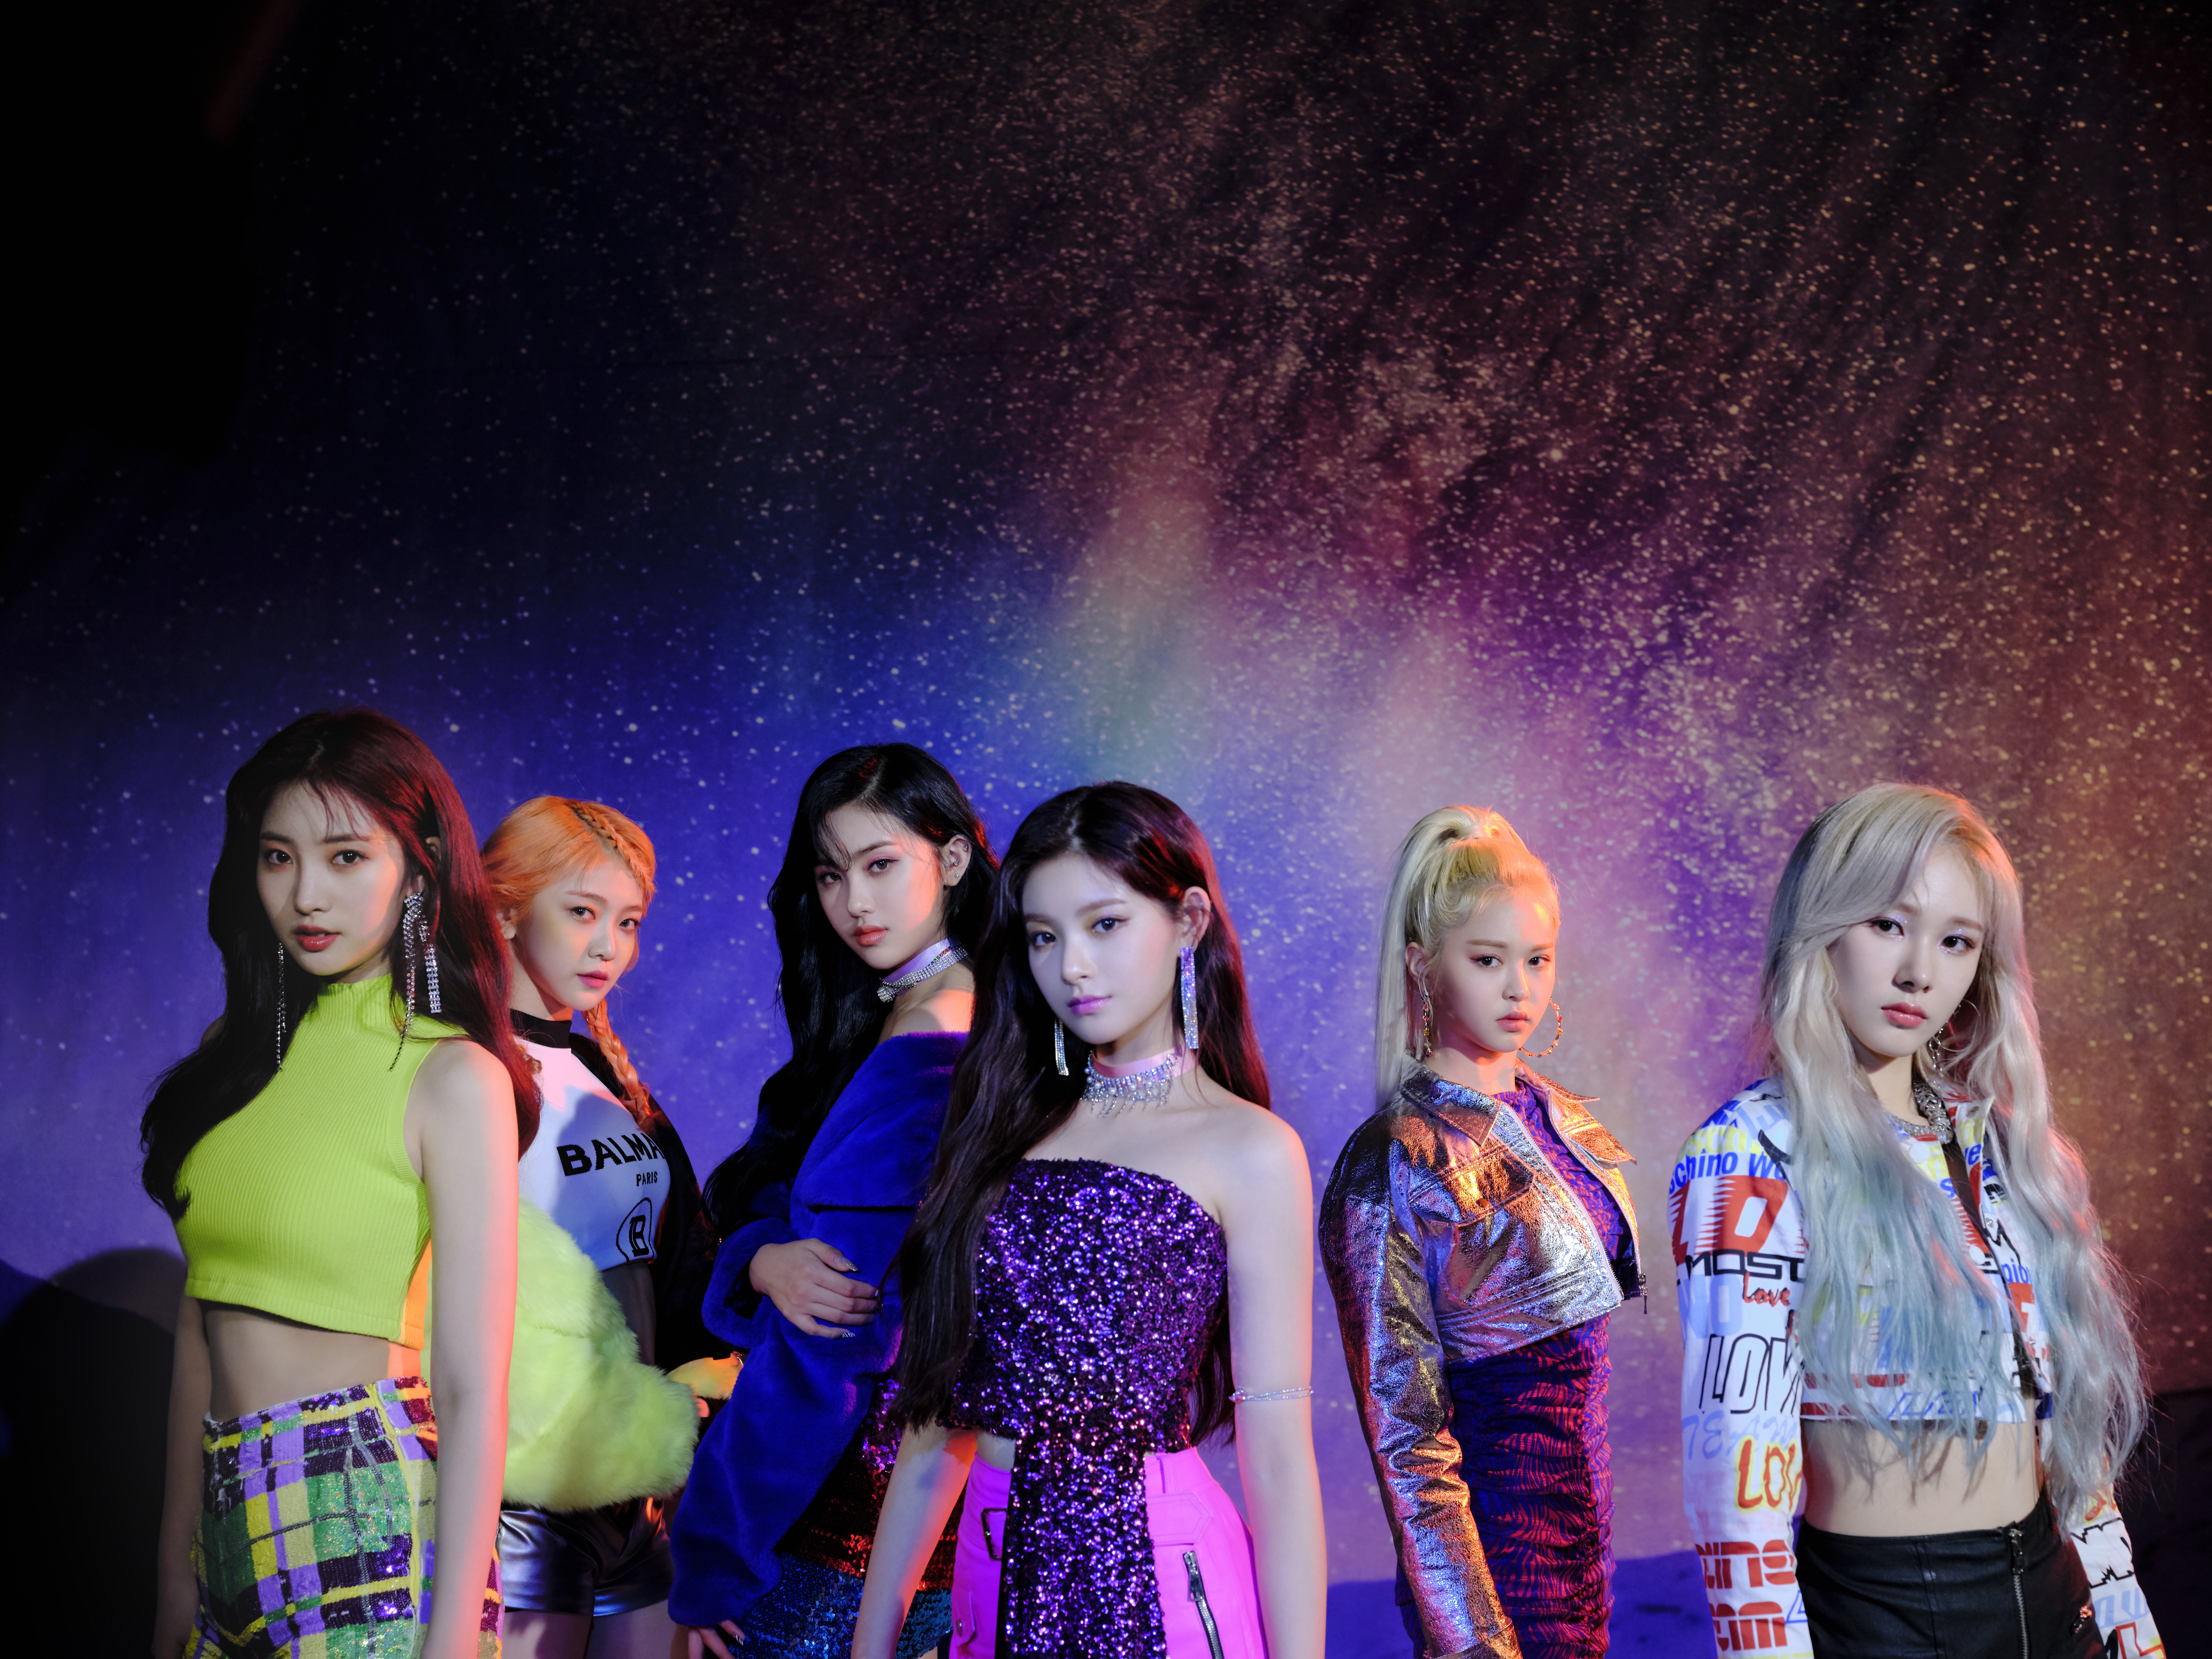 Everglow Members Profile K Pop Database Dbkpop Com For everglow 5 июн 2019 в 16:12. k pop database